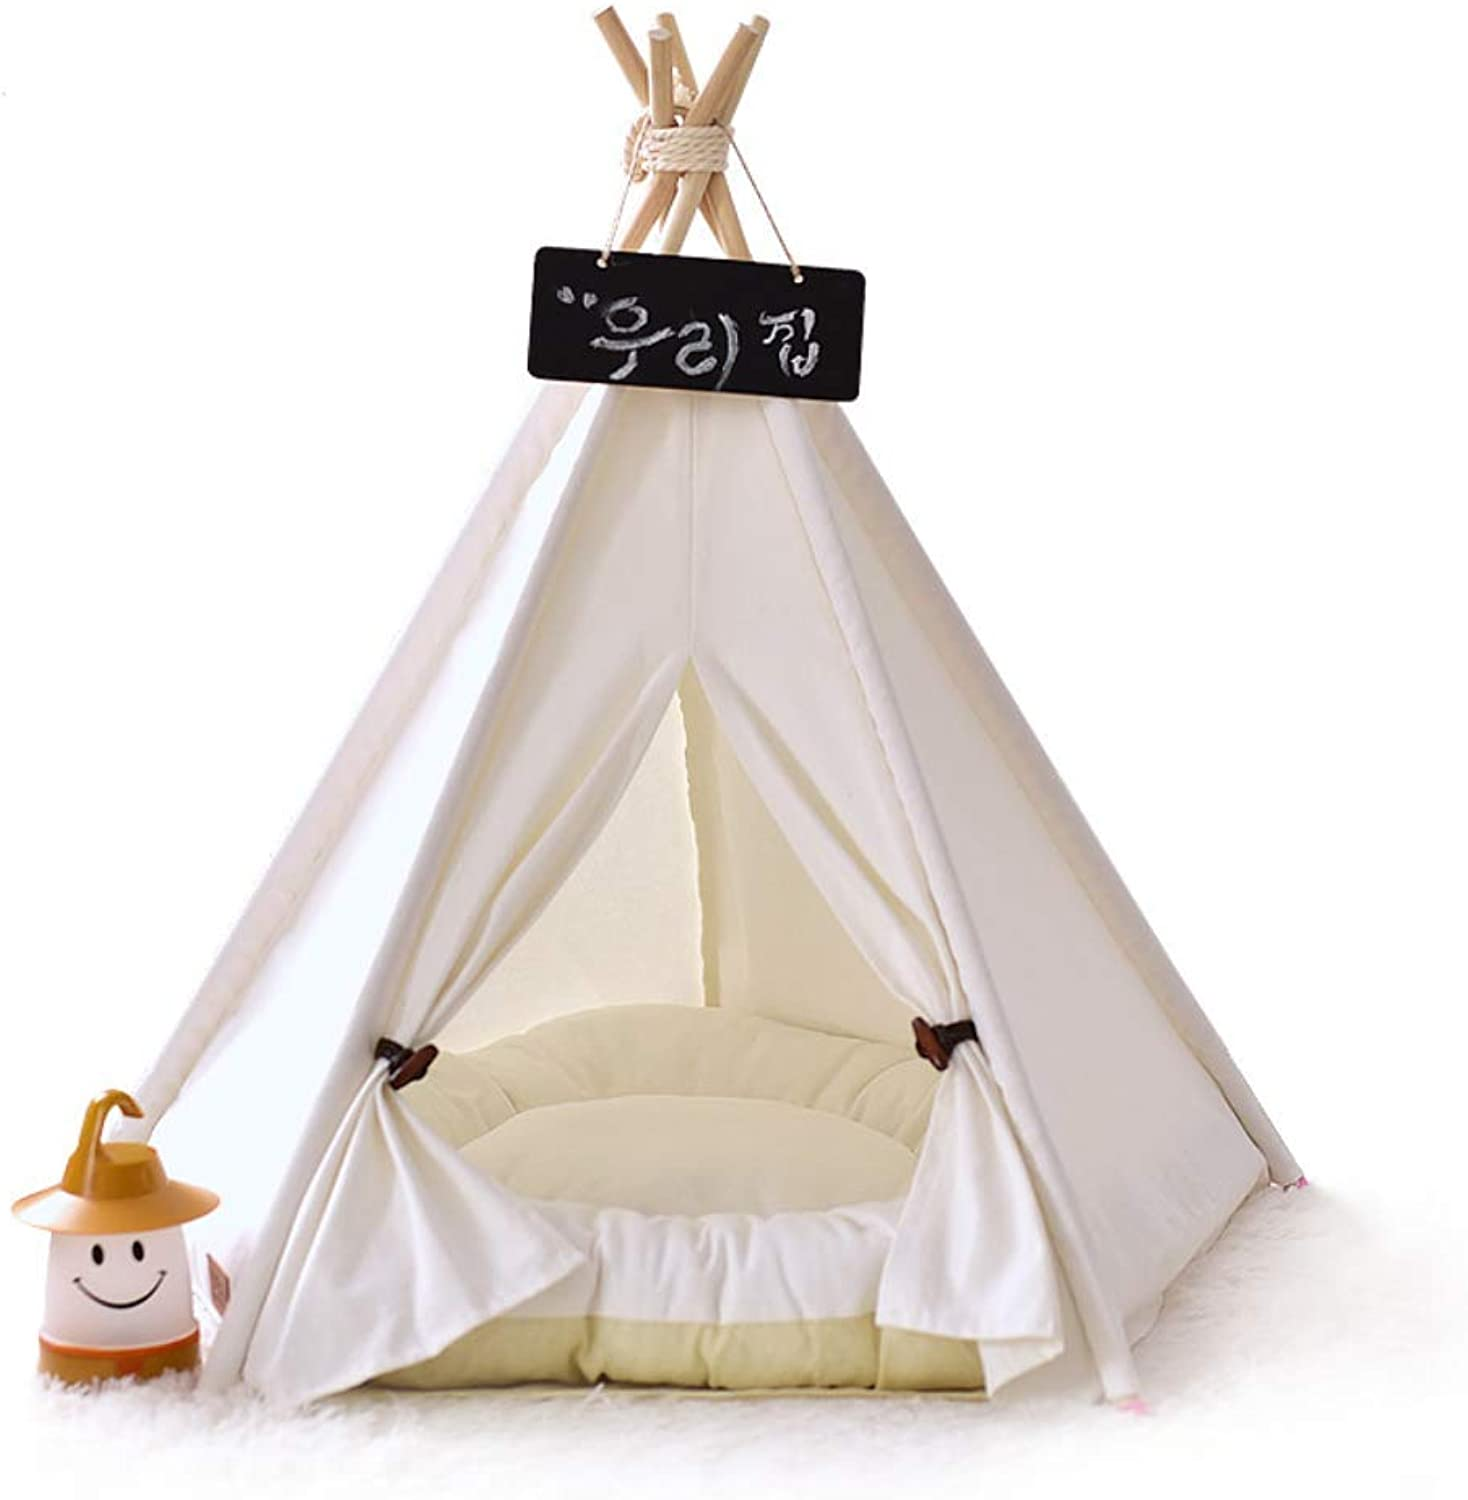 Pet Tent Removable And Washable Pet Play House Dog Play Tent Cat dog Bed (with Cushions, A Variety Of Styles)